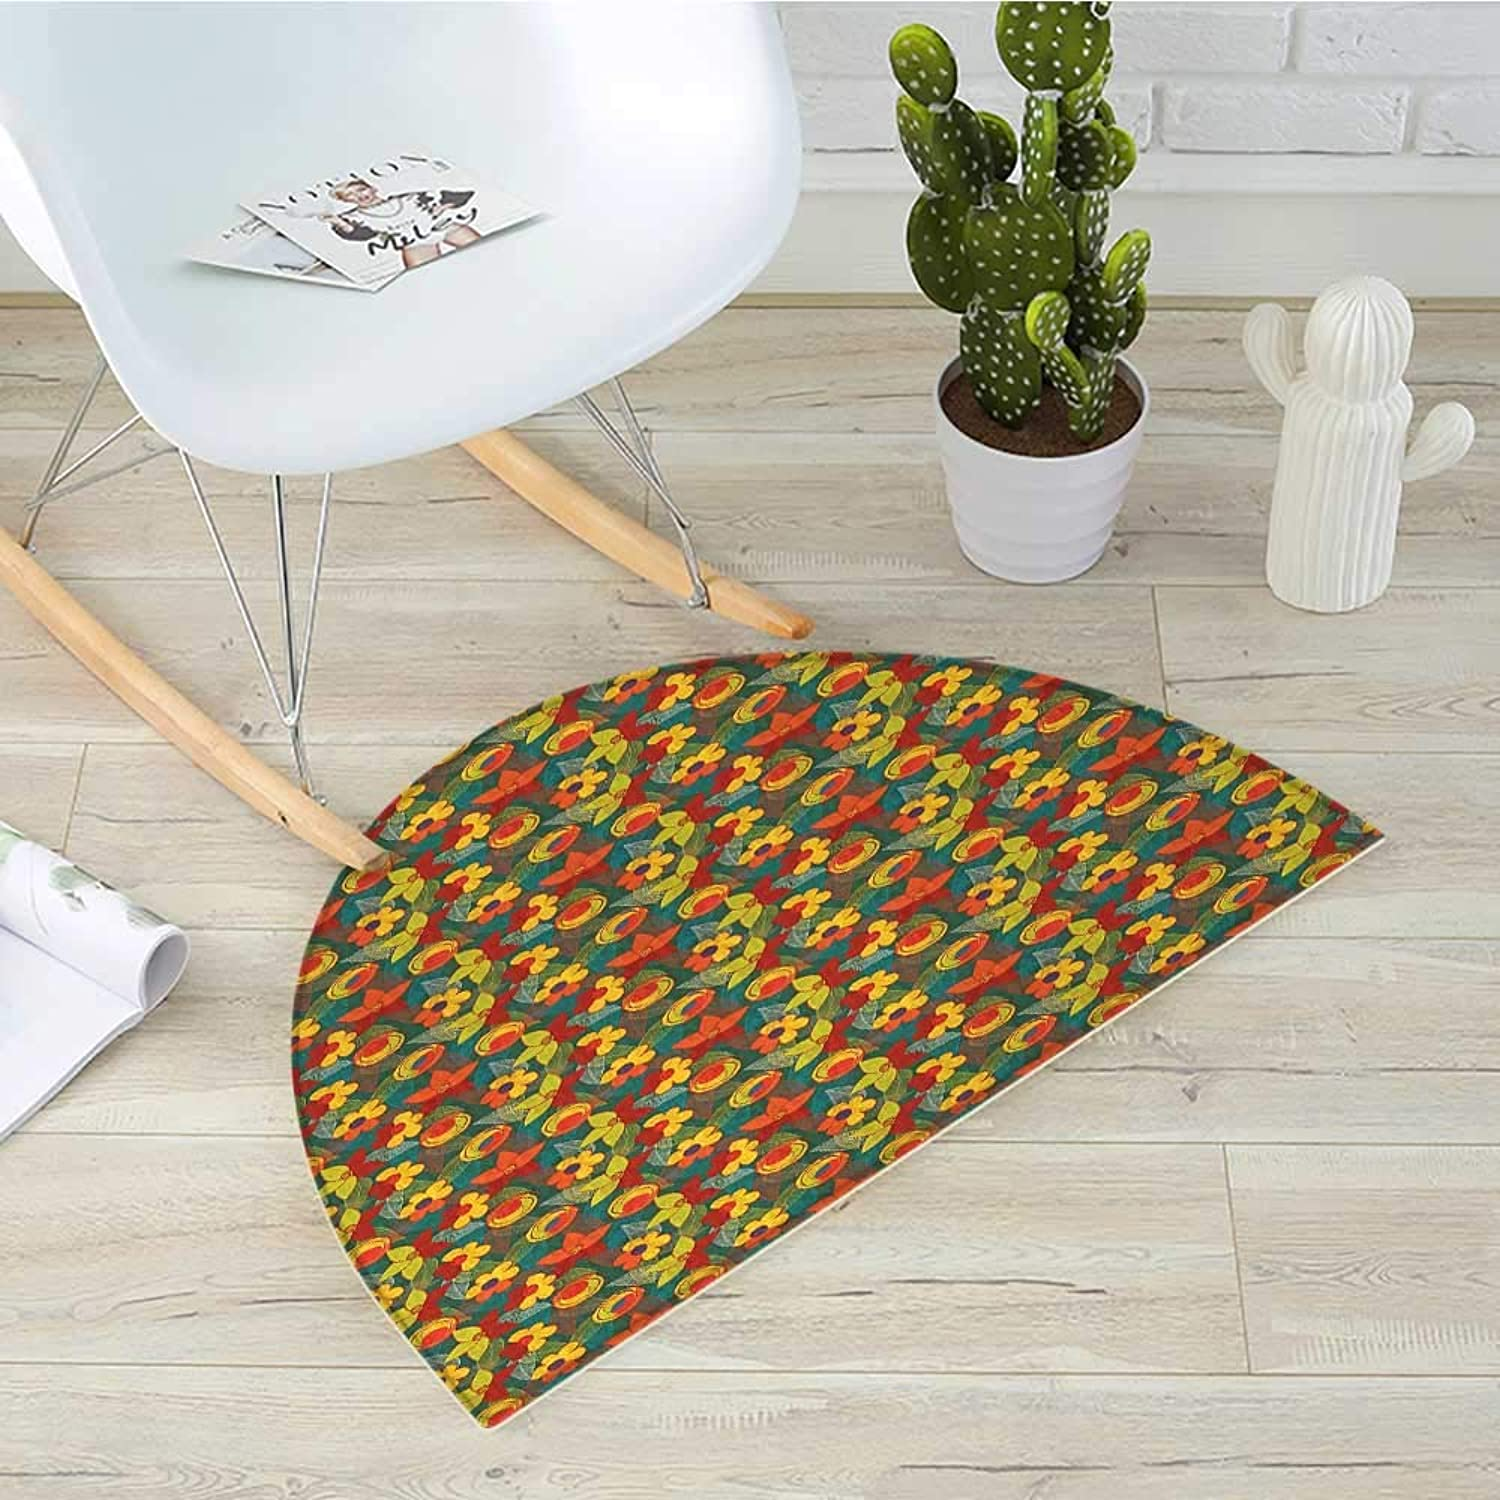 Floral Half Round Door mats Doodle Style Flowers with Abstract Foliage Leaves Background Botanic Illustration Bathroom Mat H 43.3  xD 64.9  Multicolor